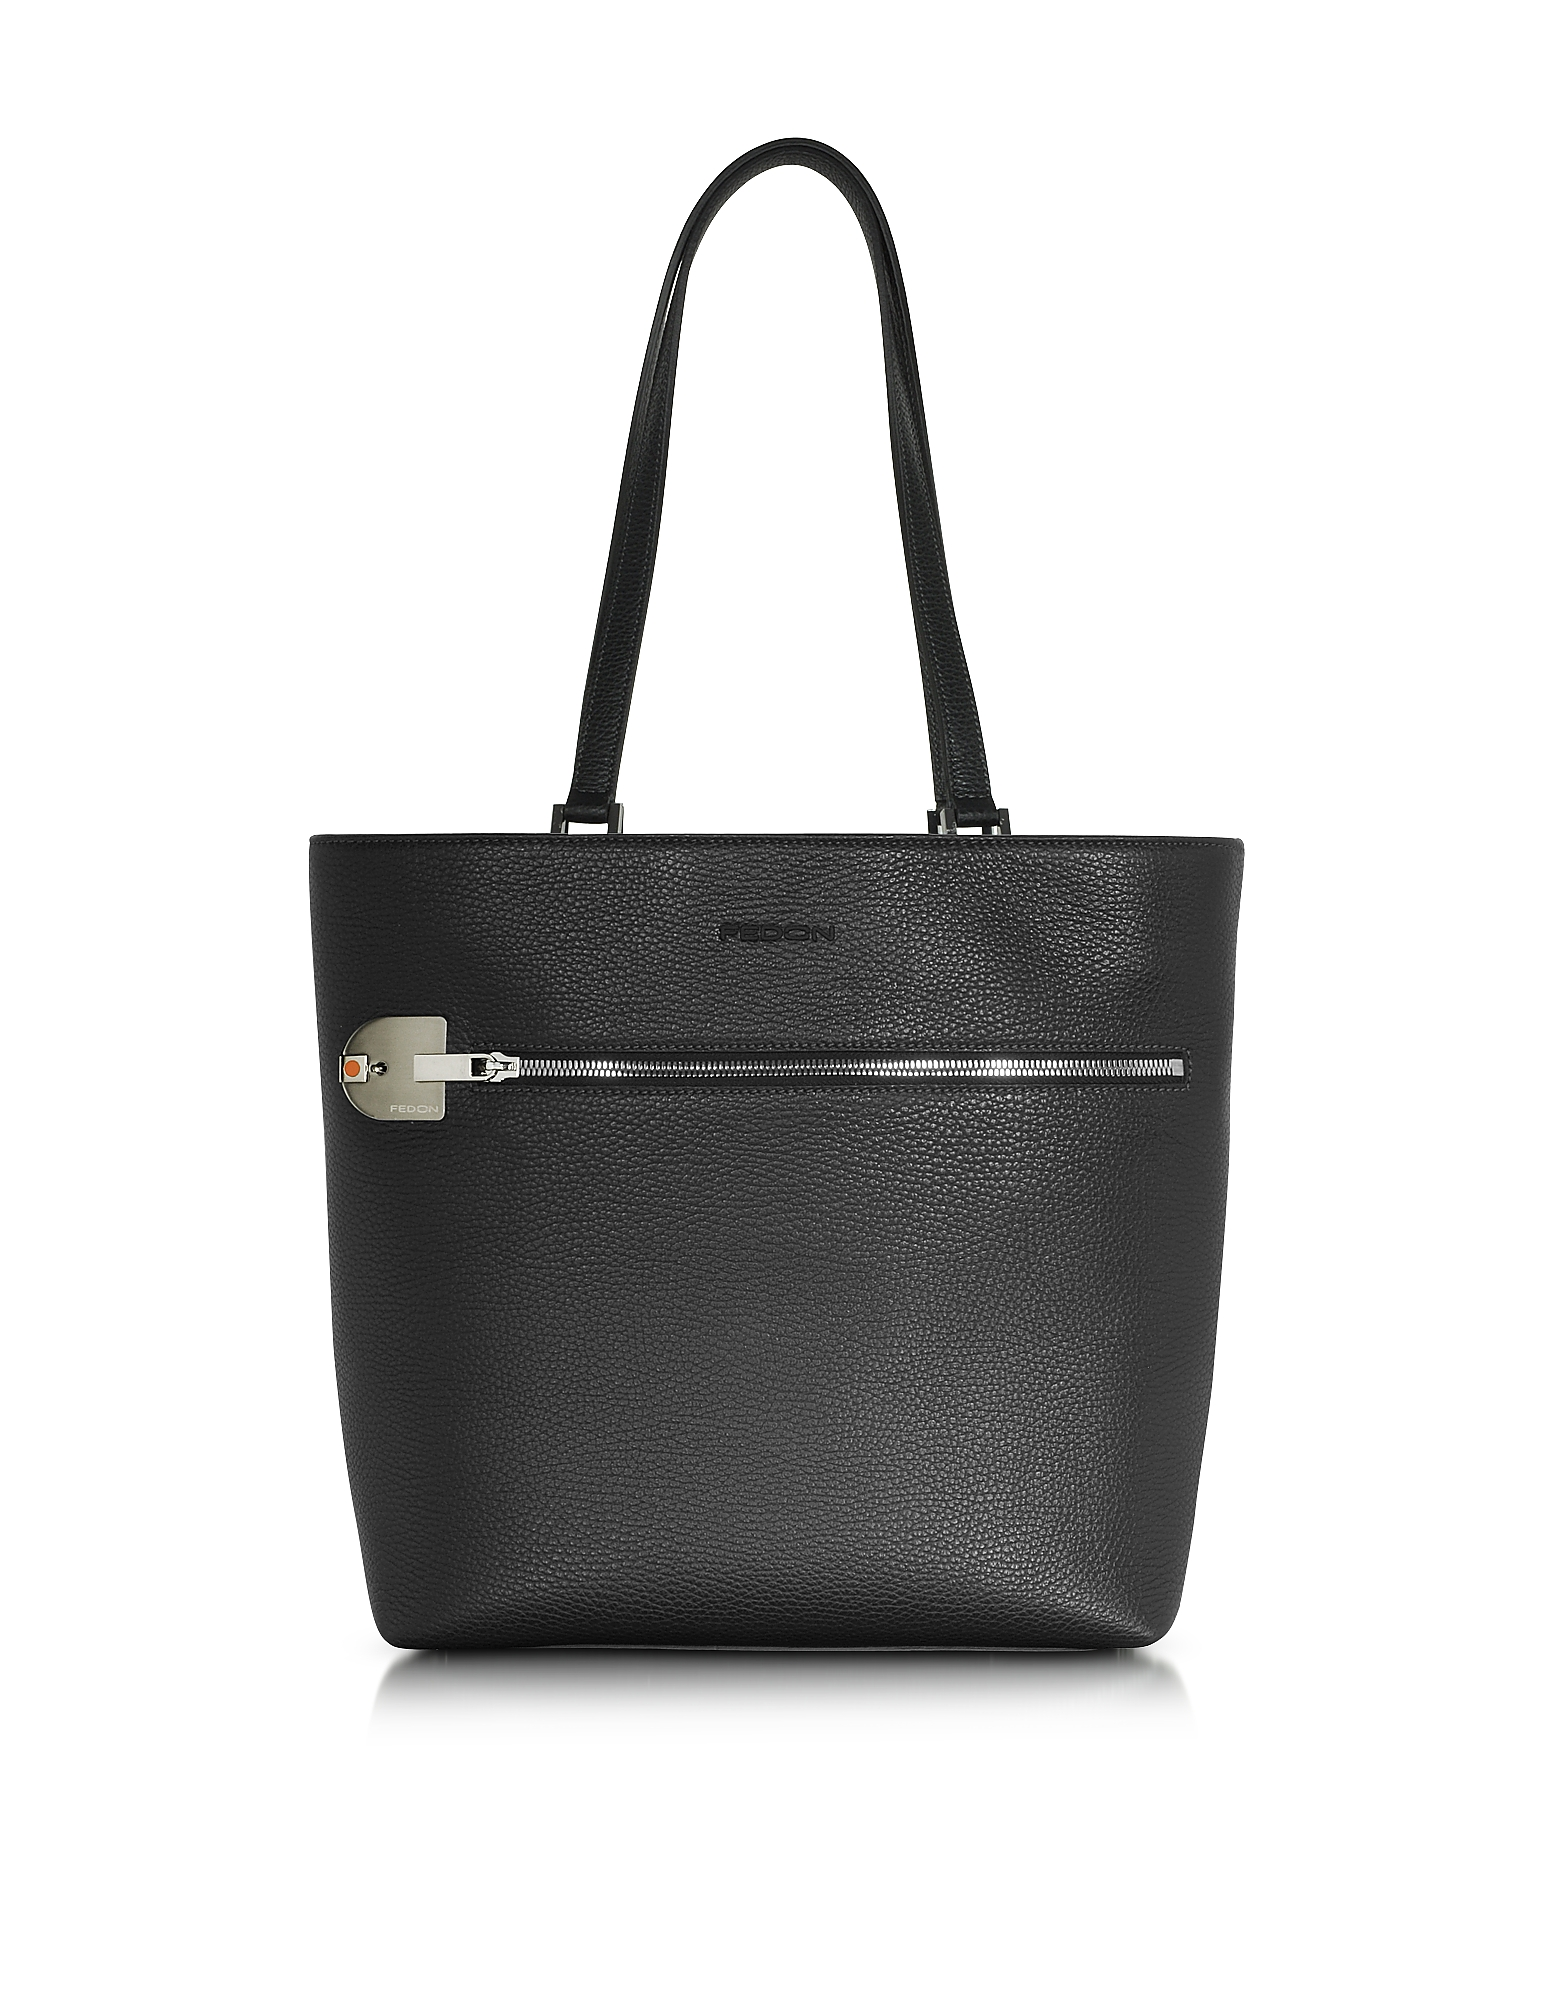 Giorgio Fedon 1919 Handbags, Amelia Black Leather Tote Bag